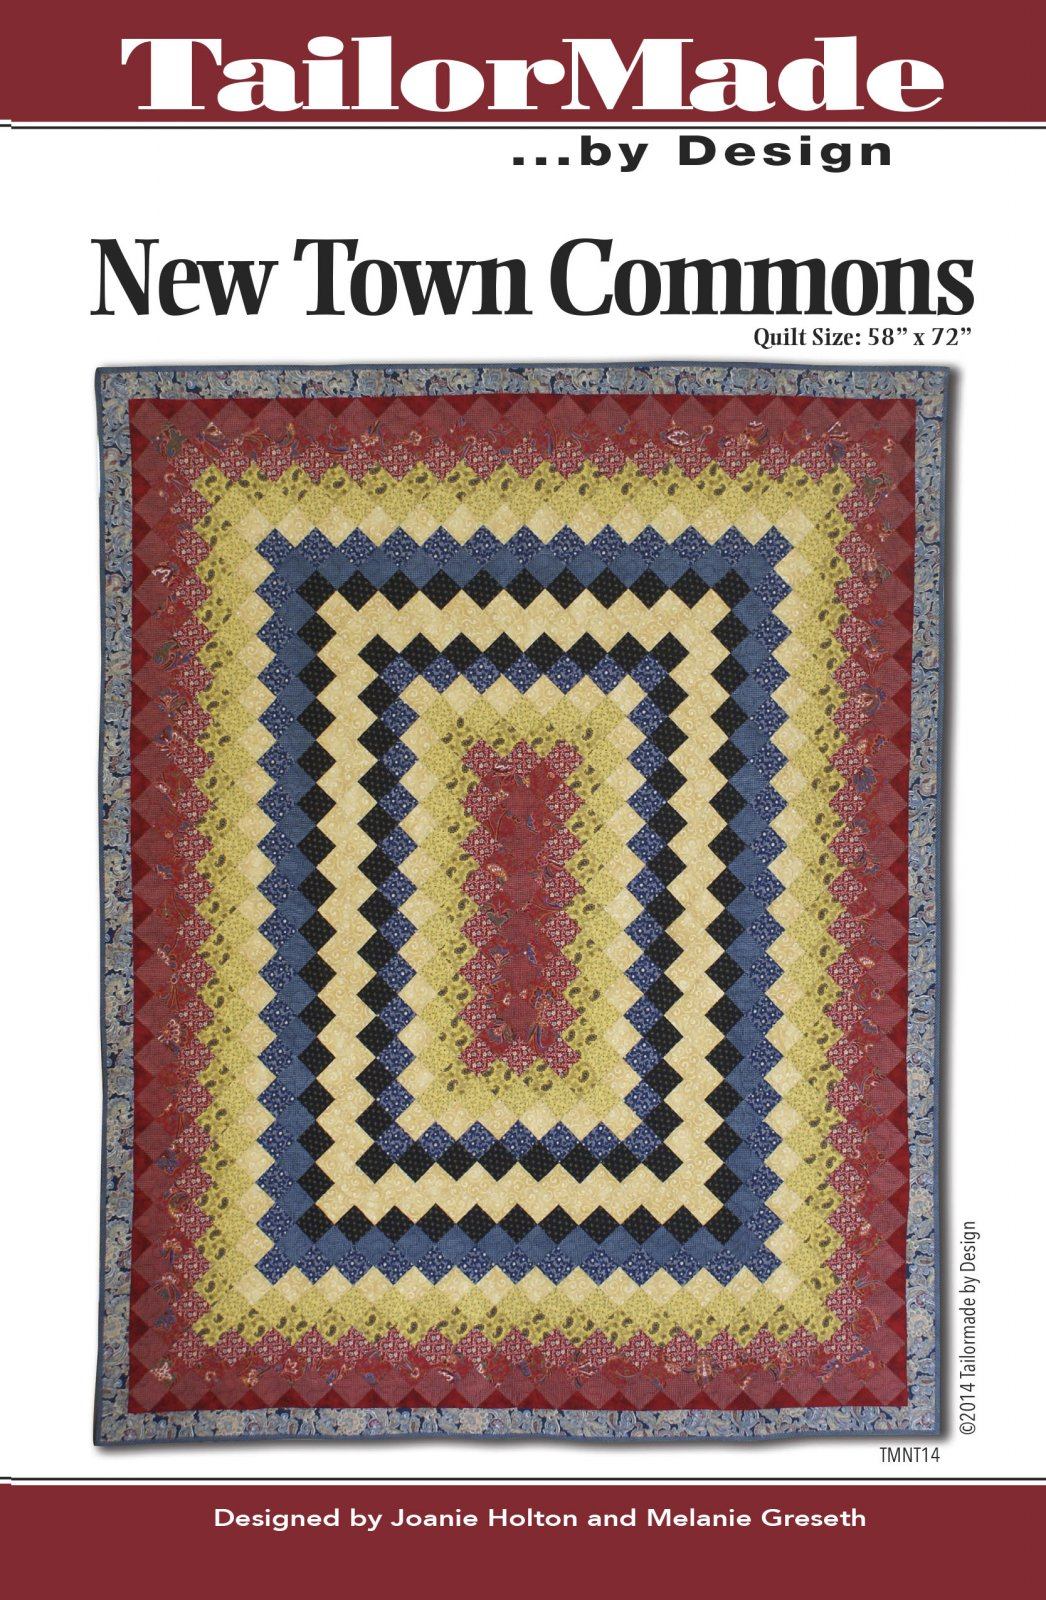 New Town Commons pattern